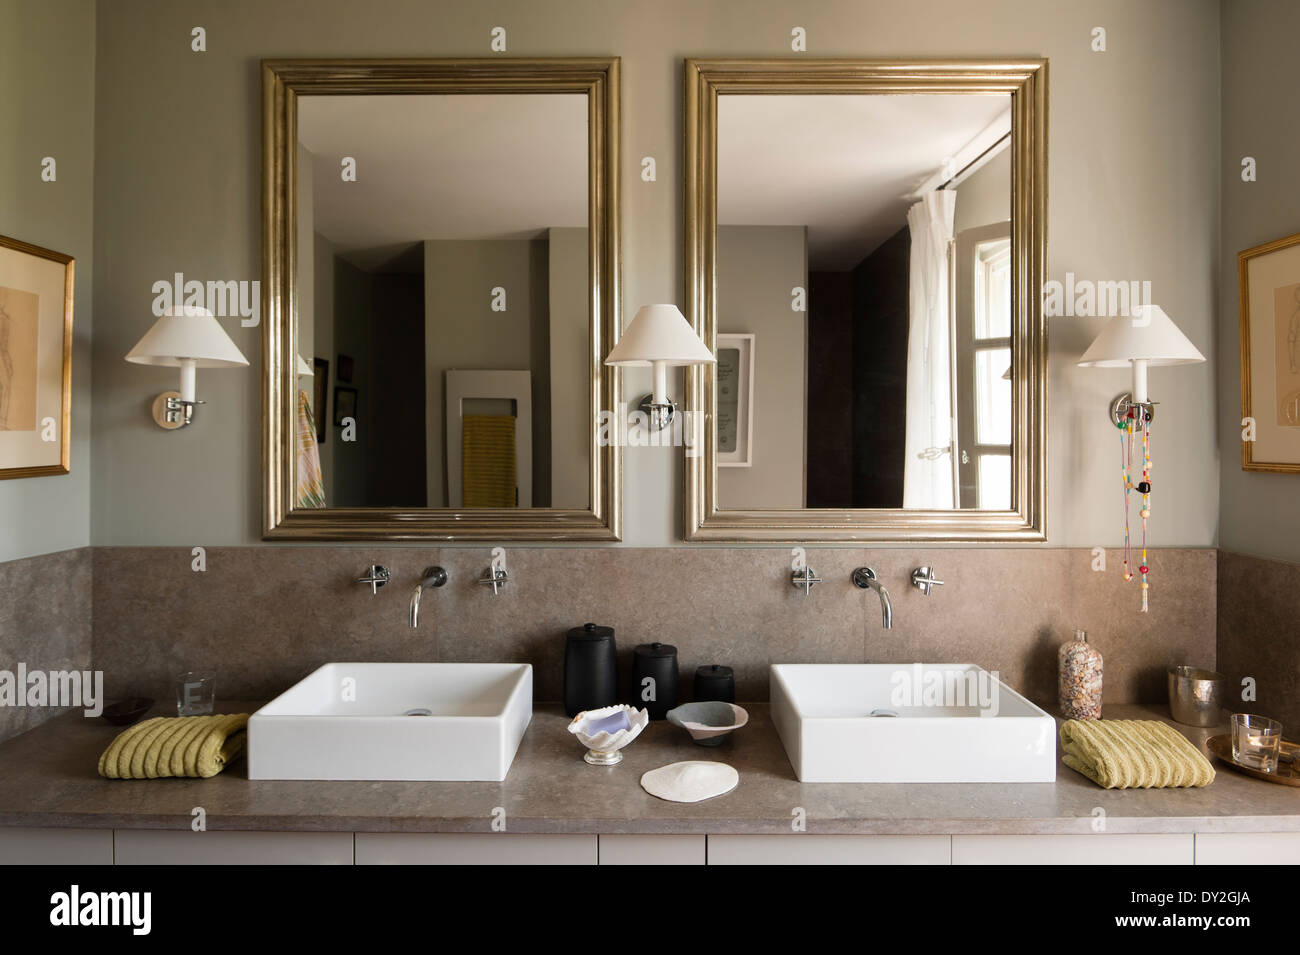 Modern twin square basins and mirrors in bathroom in grey tones. The wall paint is by Emery & Cie - Stock Image